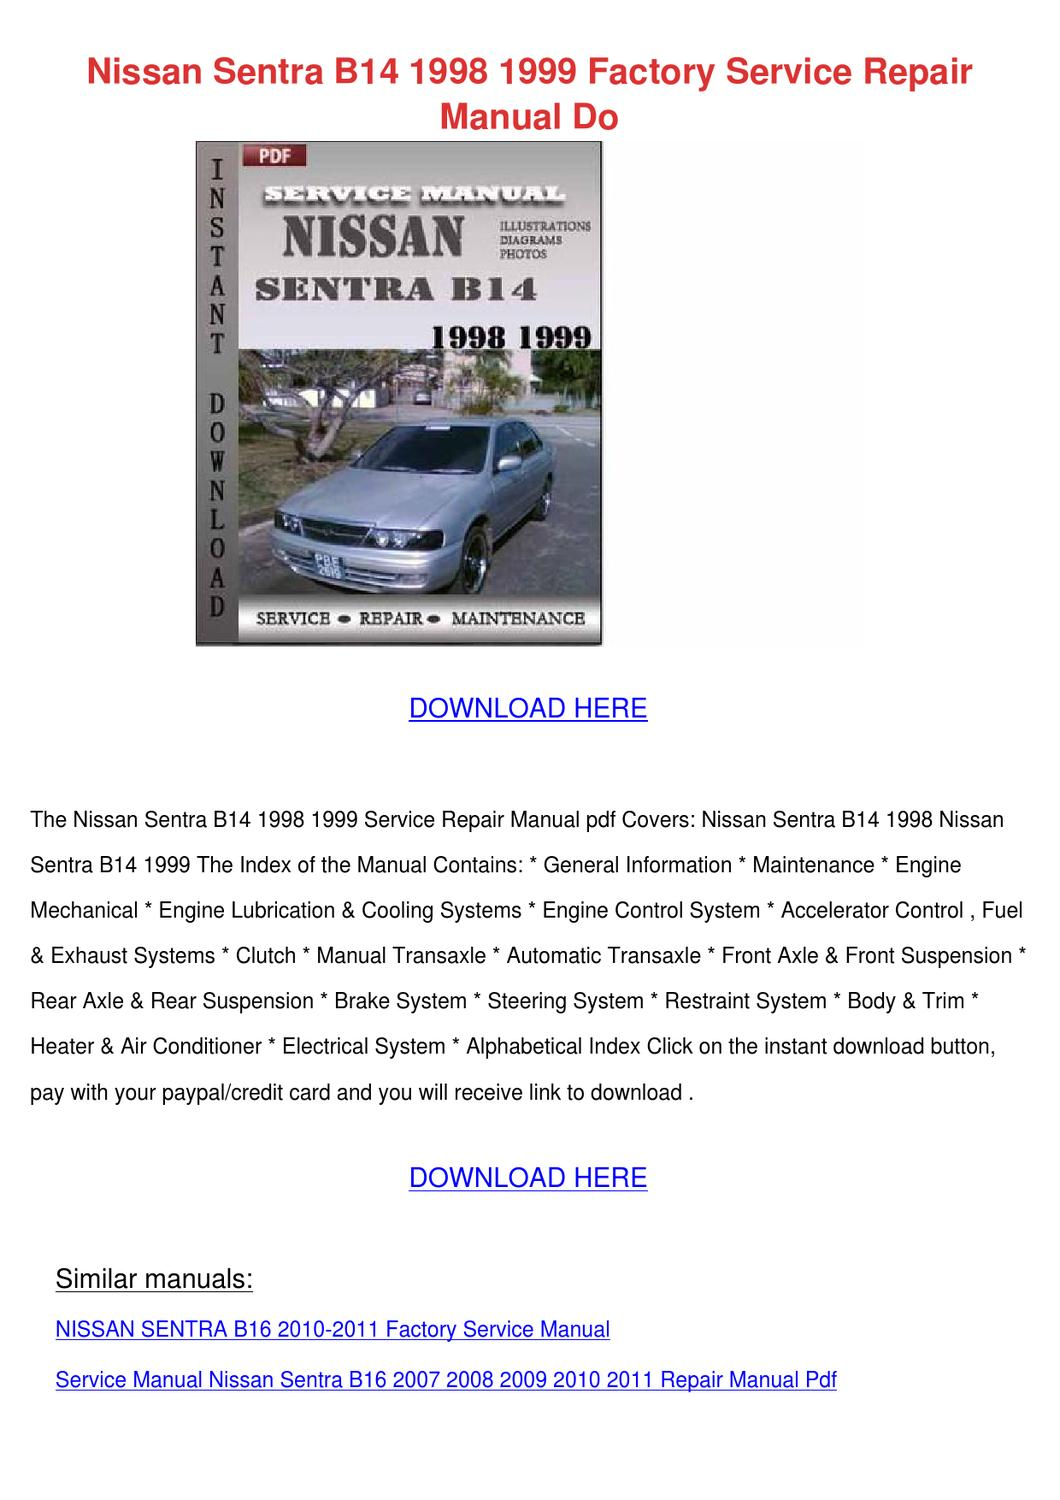 Nissan Sentra B14 1998 1999 Factory Service R By border=